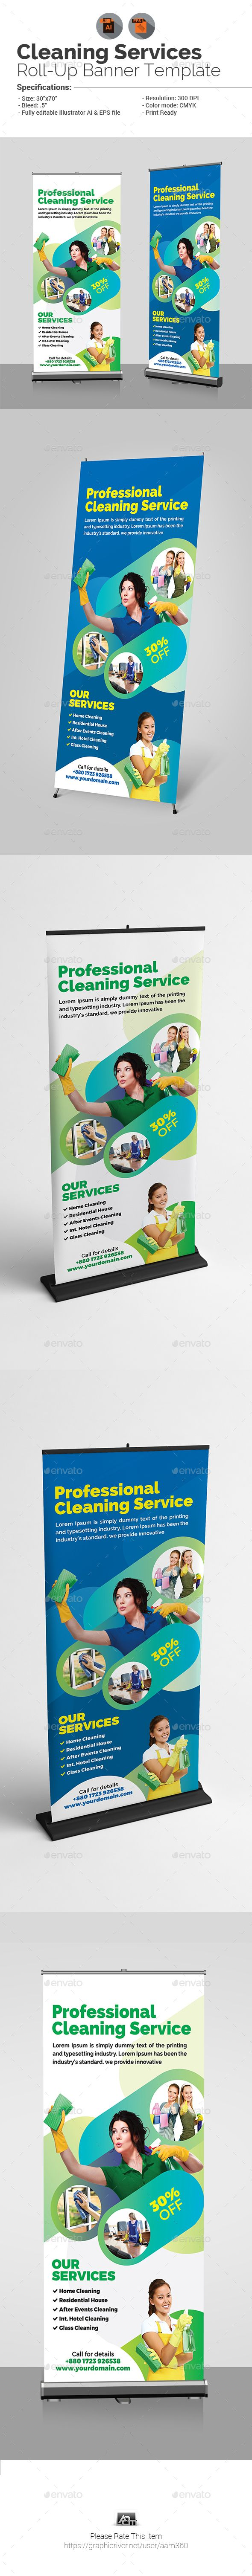 Cleaning Service Roll-Up Banner Template Vector EPS, AI